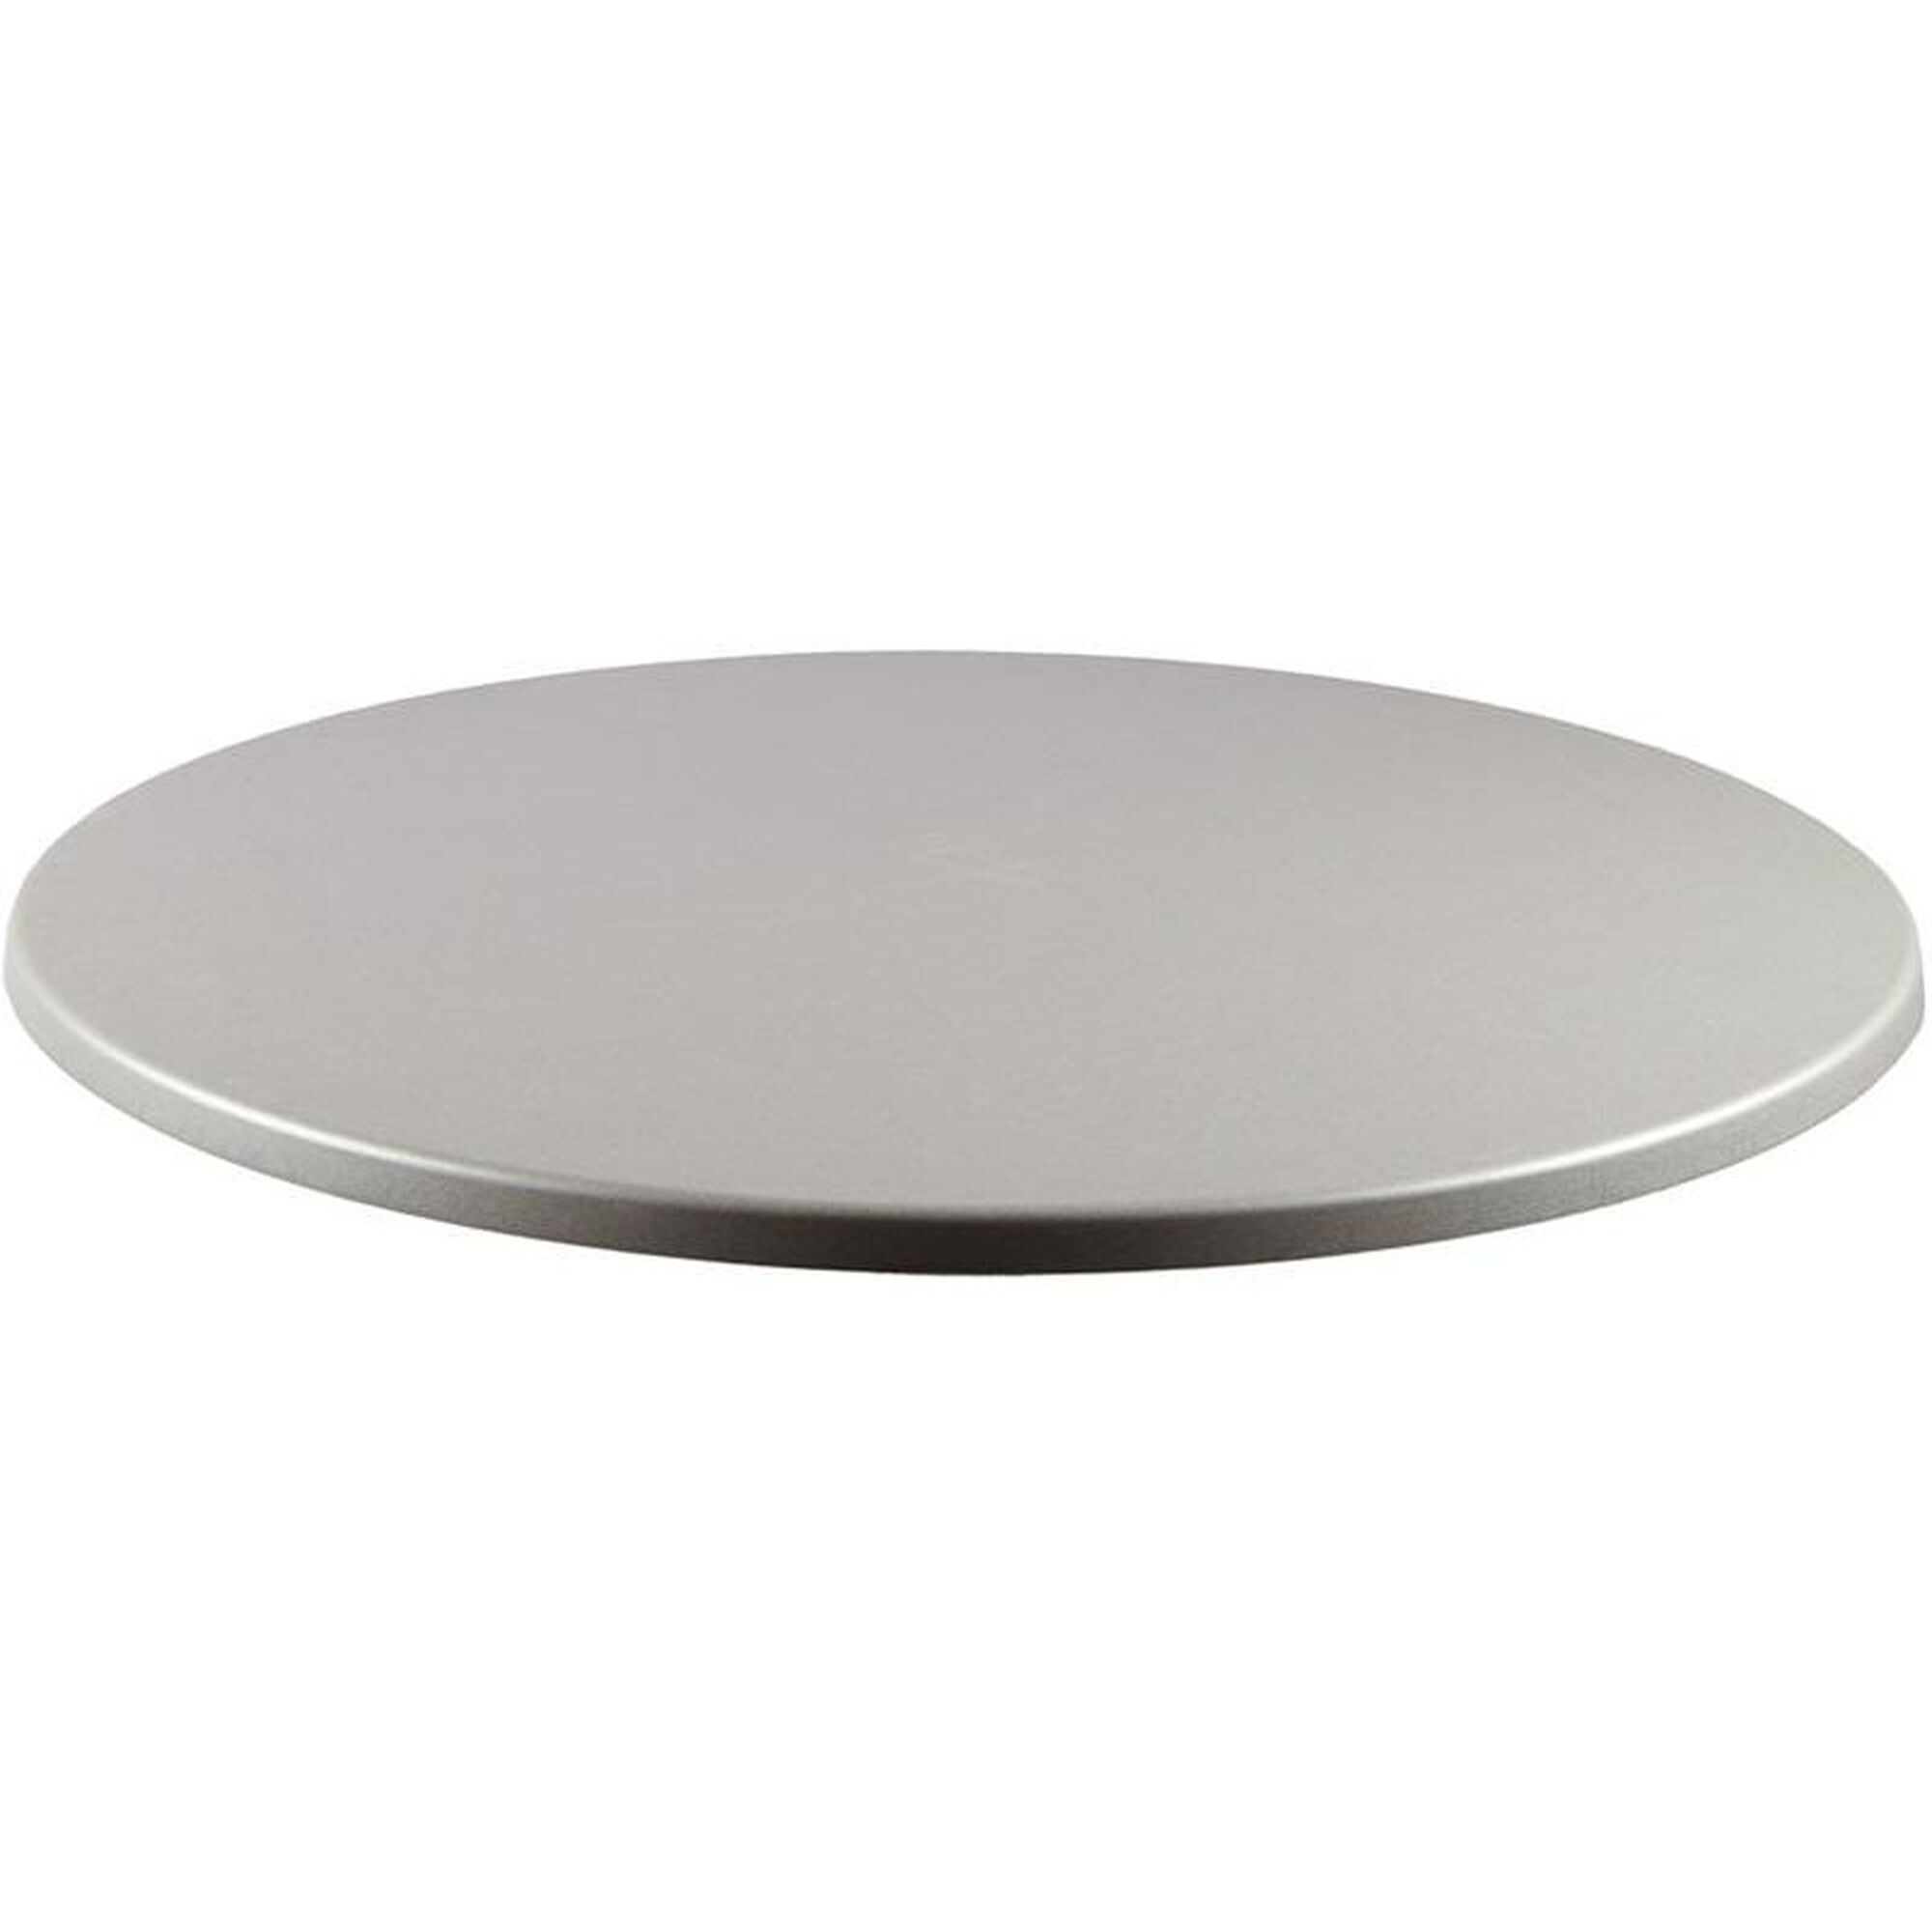 Duratop Silver Round Table Top Sc 2601 422 Brs Bestchiavarichairs Com